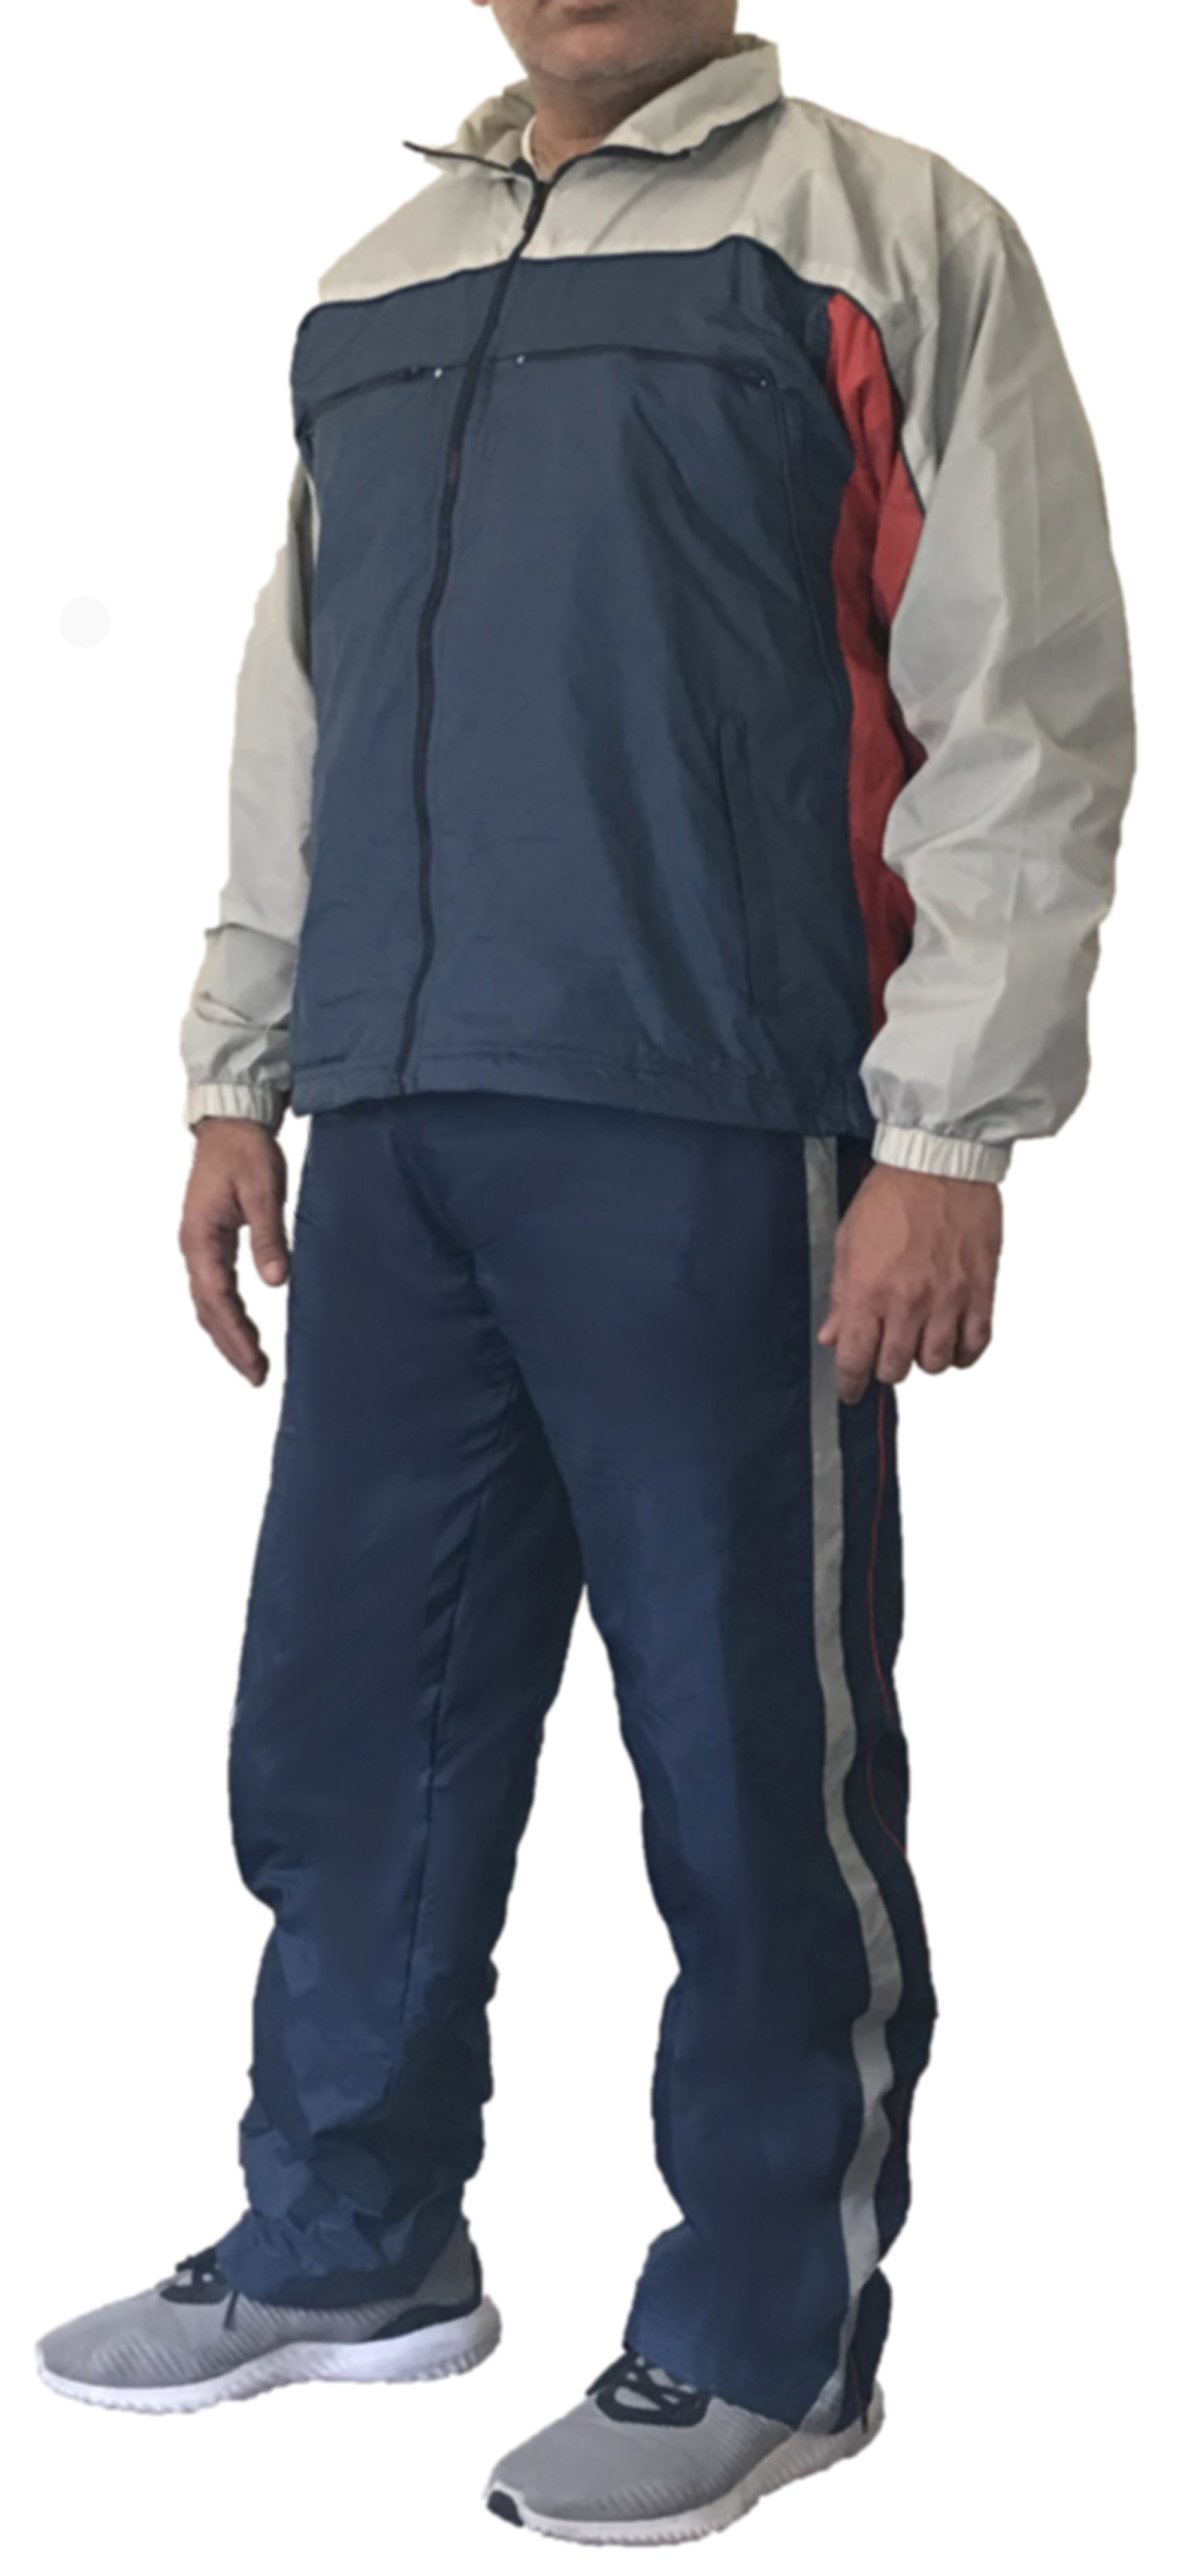 Sportier Classic Collection. 2 Pcs Jogging Track Suit with Pocket, Warm up Suit with Mesh Lining Added for Breathability. (XL)